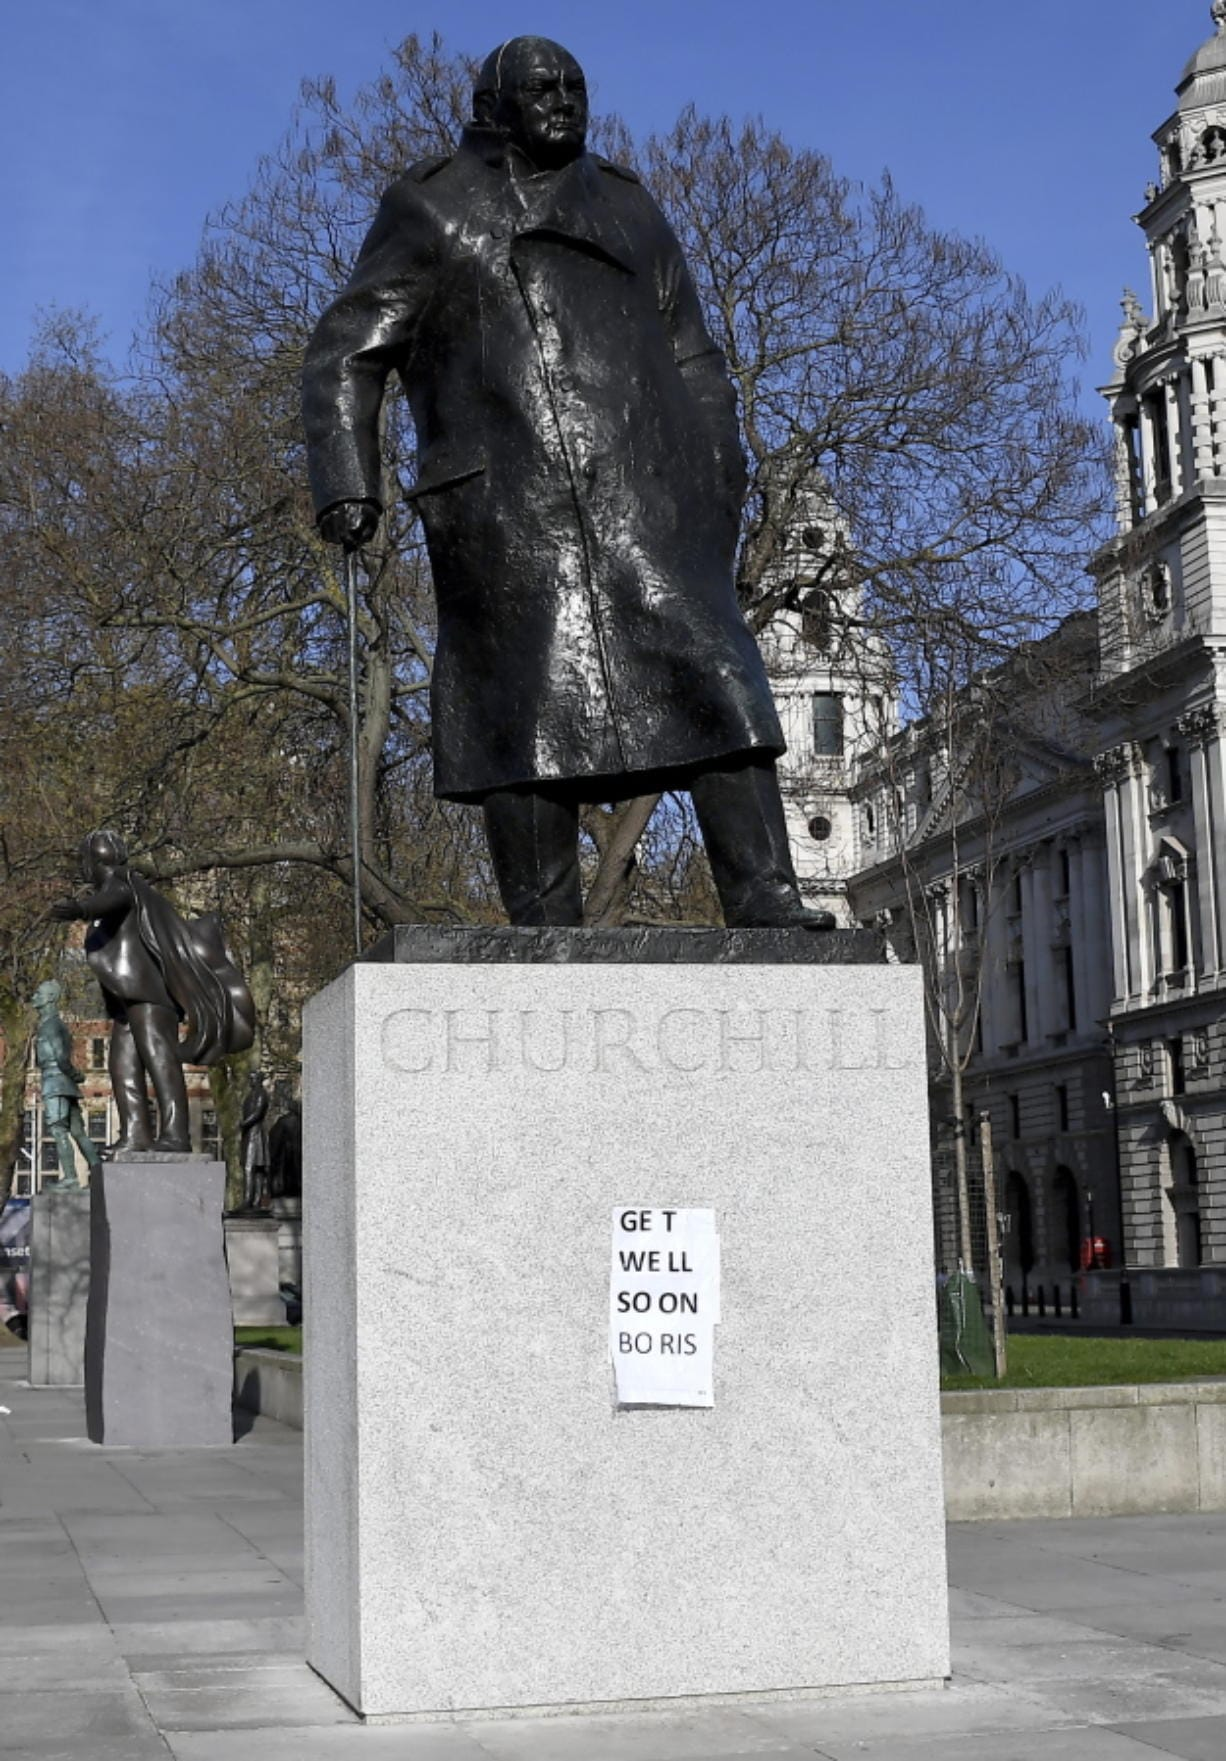 People have put a paper saying 'Get Well Soon Boris' on the statue of Winston Churchill in central London as British Prime Minister Boris Johnson was moved to intensive care after his coronavirus symptoms worsened in London, Tuesday, April 7, 2020. Johnson was admitted to St Thomas' hospital in central London on Sunday after his coronavirus symptoms persisted for 10 days. Having been in hospital for tests and observation, his doctors advised that he be admitted to intensive care on Monday evening.